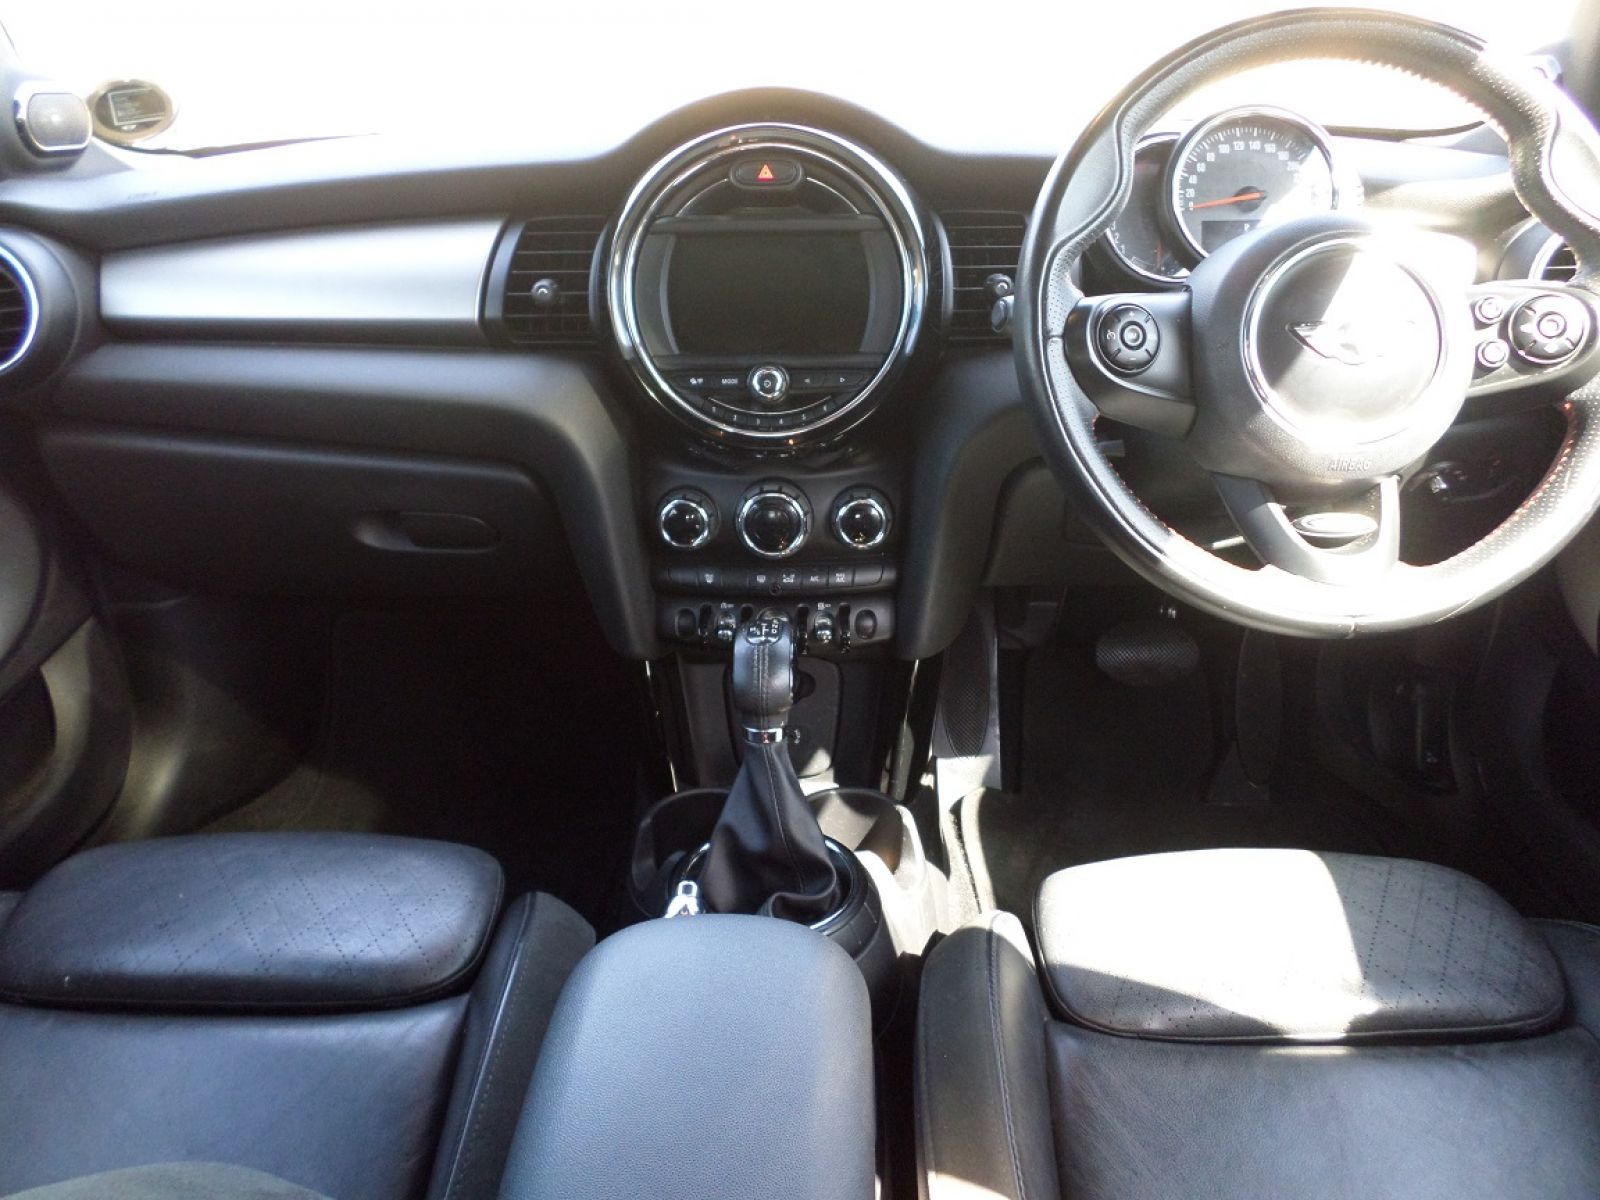 2015 MINI HATCH 5-DOOR COOPER S 5DR A/T (XS72)